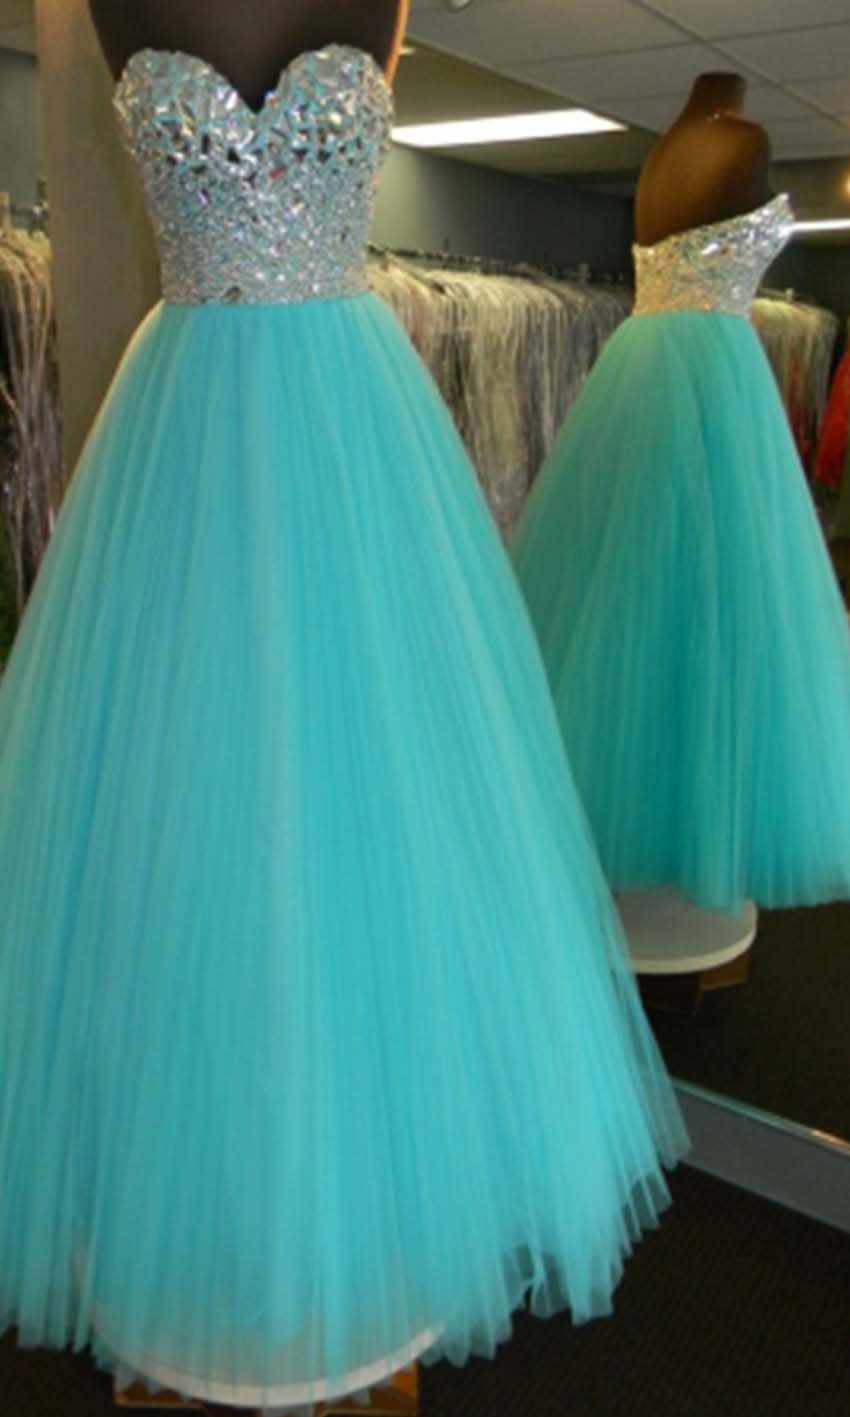 Sweetheart Teal Rhinestone Tulle Long Prom Gowns KSP248 [KSP248] - £102.00 : Cheap Prom Dresses Uk, Bridesmaid Dresses, 2014 Prom & Evening Dresses, Look for cheap elegant prom dresses 2014, cocktail gowns, or dresses for special occasions? kissprom.co.uk offers various bridesmaid dresses, evening dress, free shipping to UK etc.